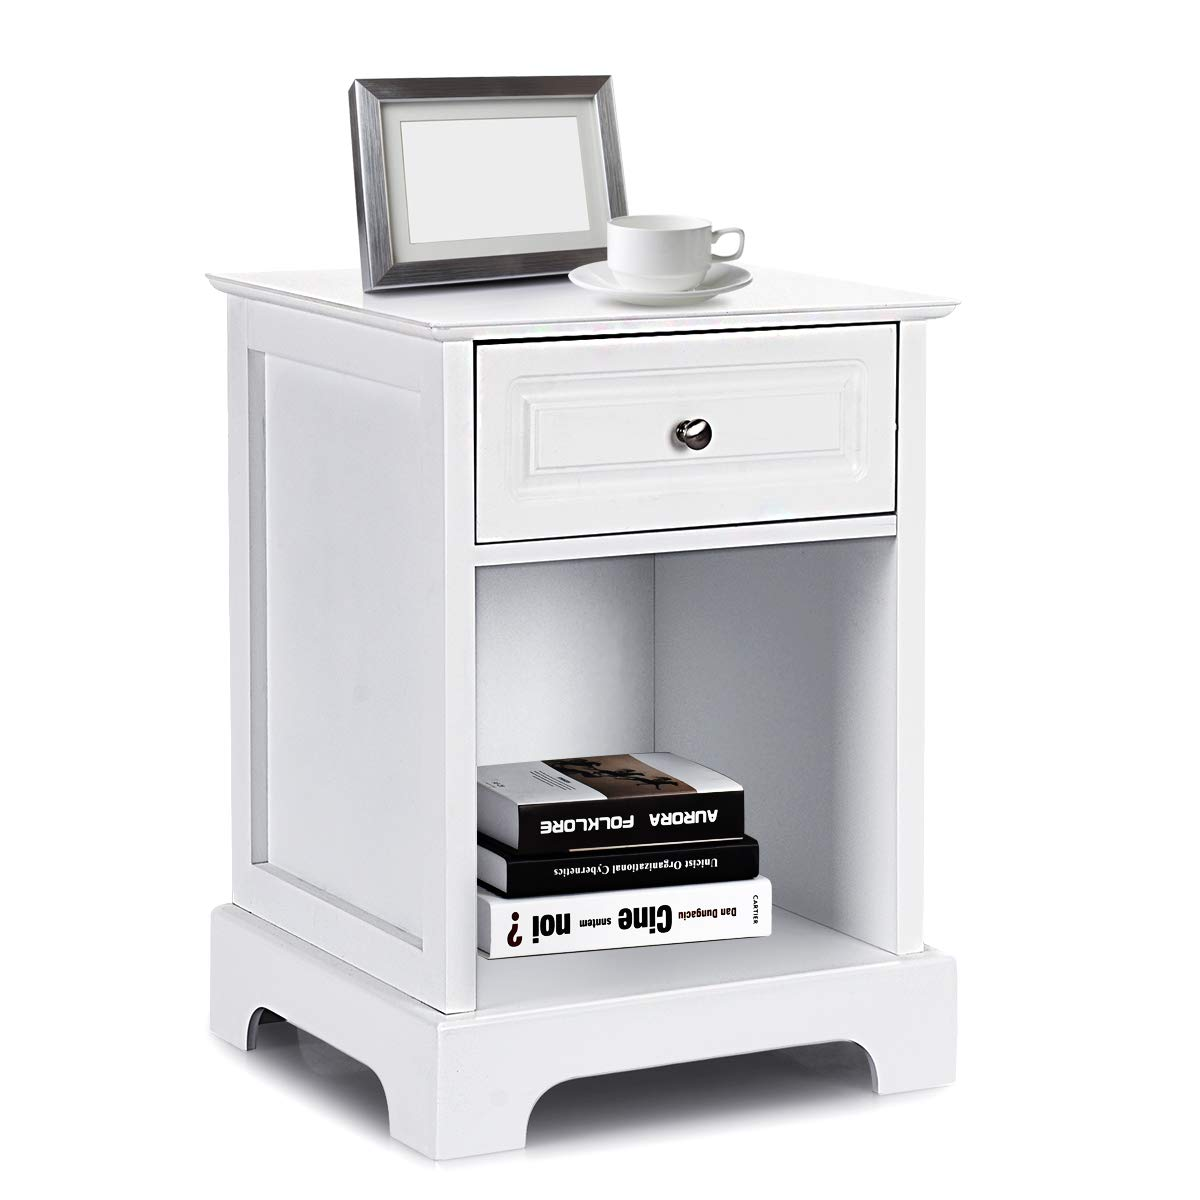 Giantex End Table W/ 1 Drawer and Open Shelf for Home Living Room Furniture Chest Sofa Side Bedside Storage Nightstand (White)